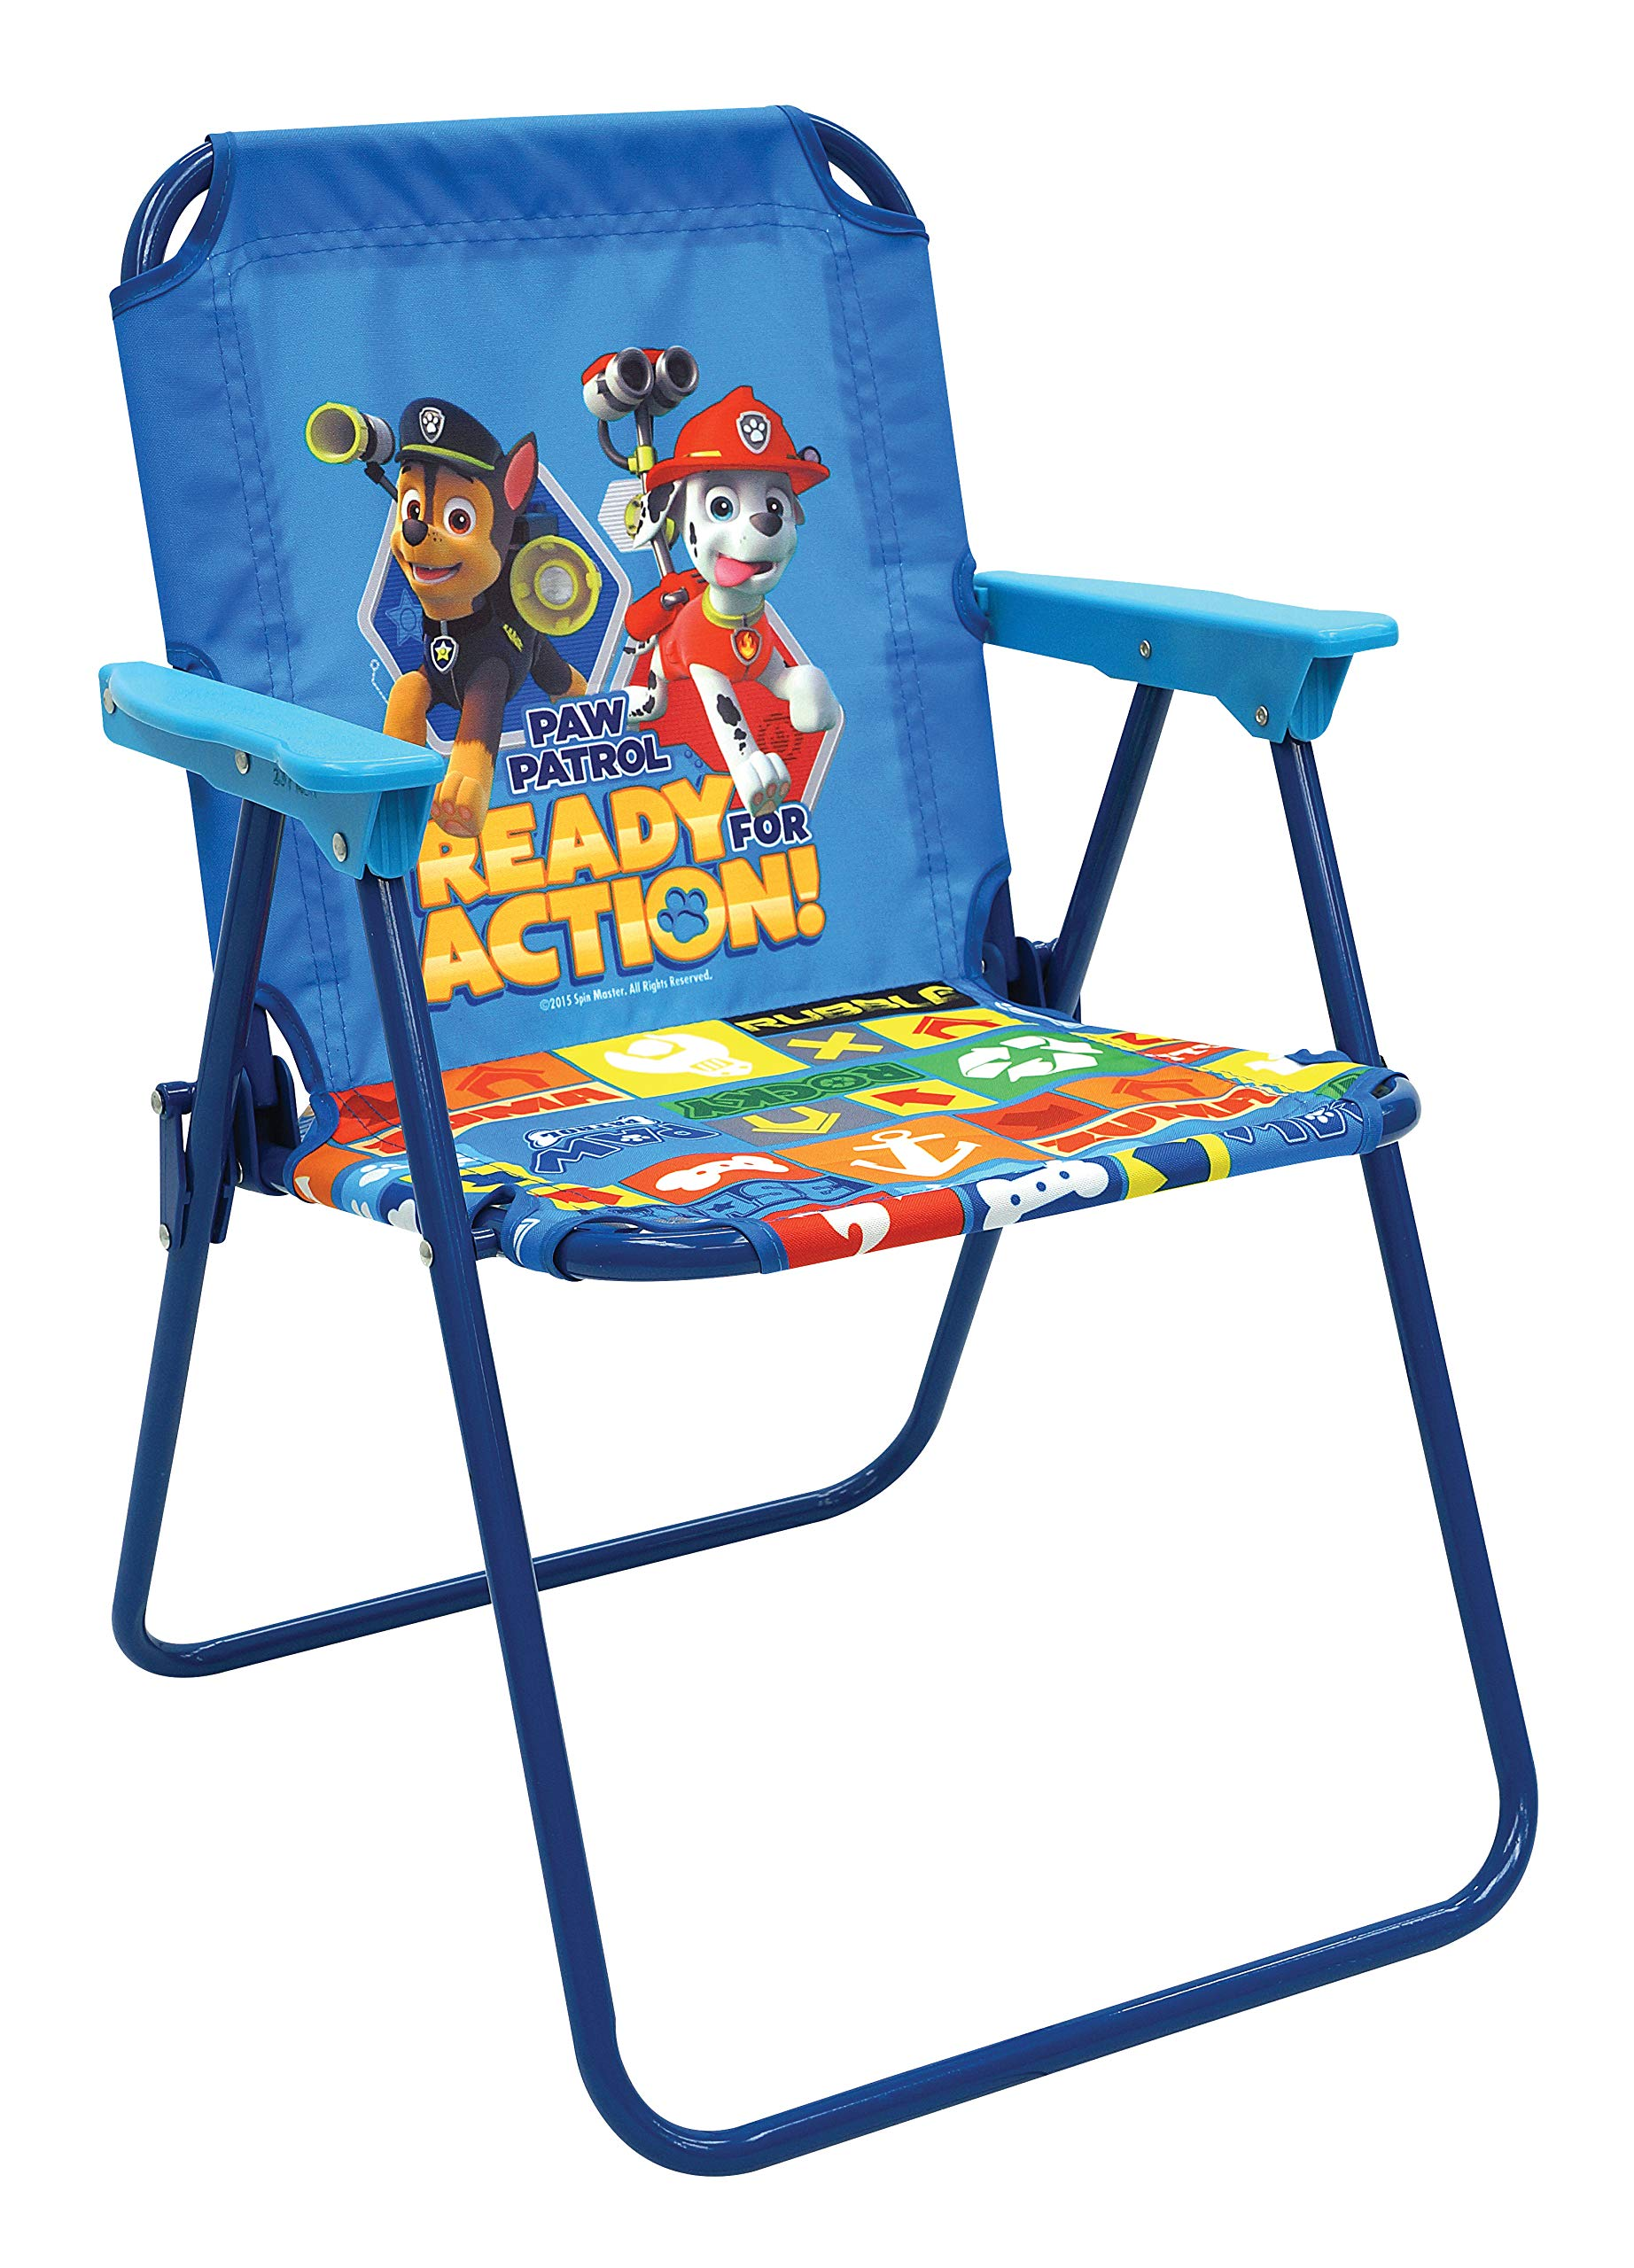 Paw Patrol - Blue Patio Chair for Kids, Portable Folding Lawn Chair